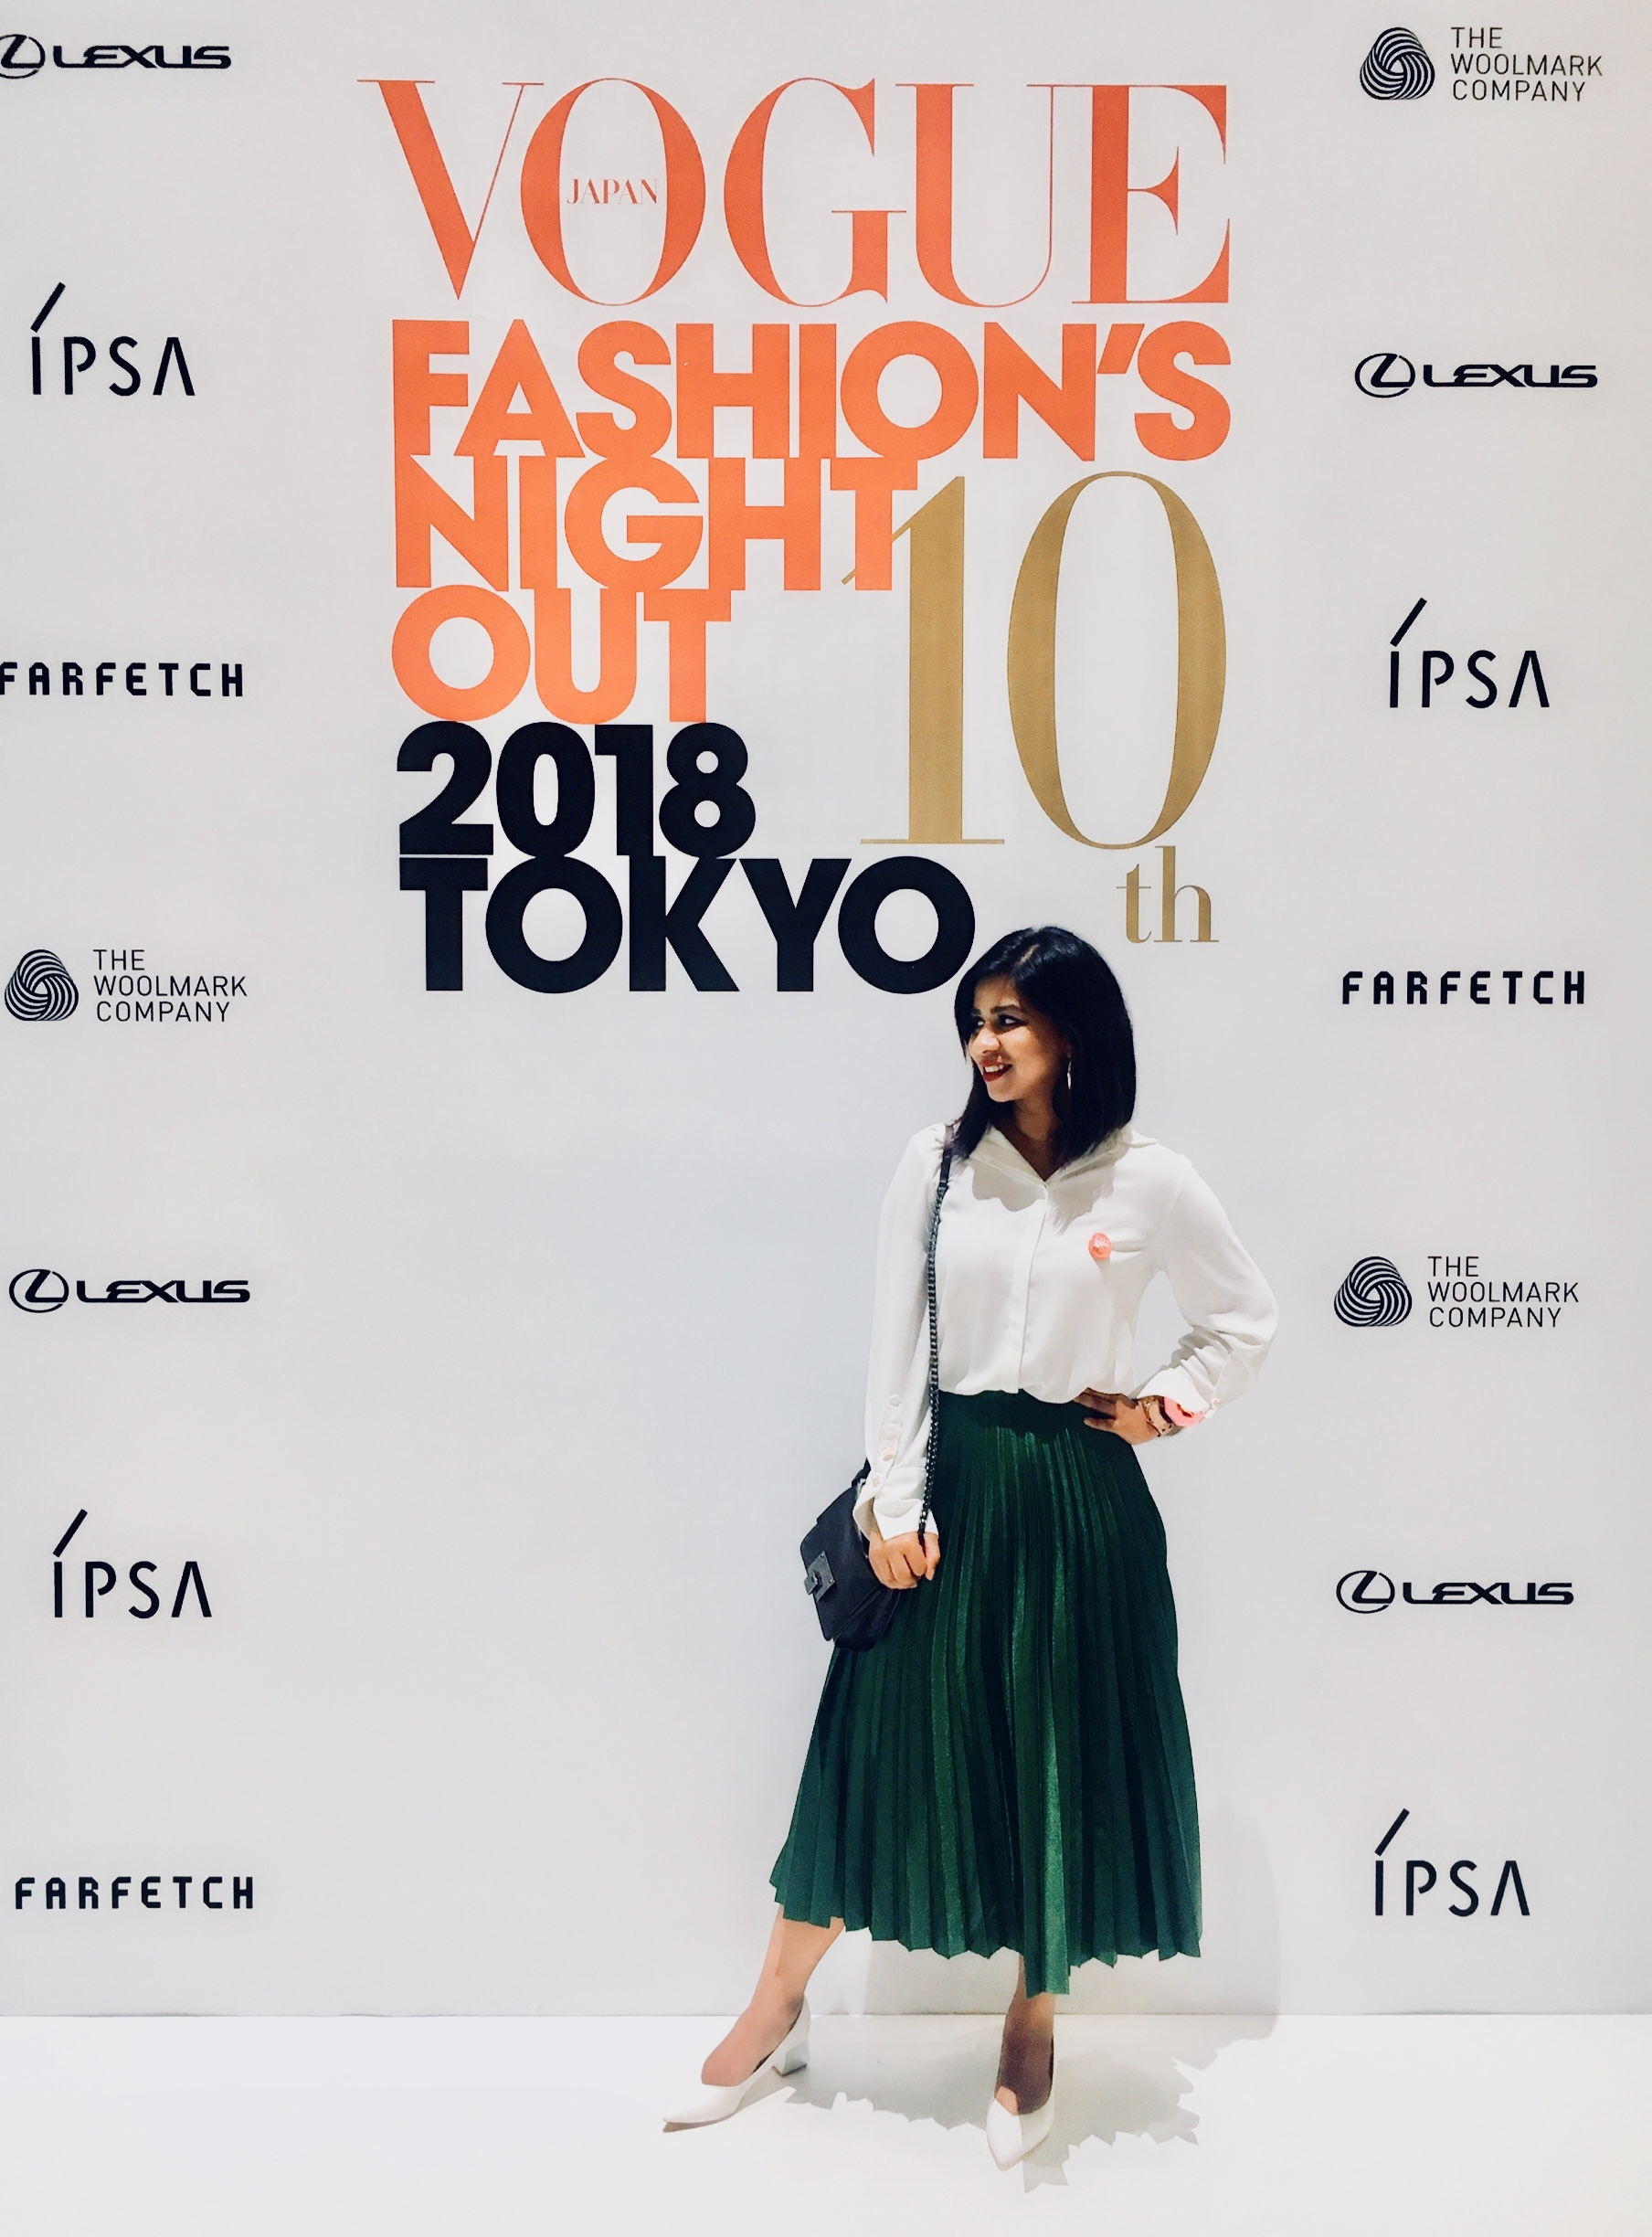 Vogue FNO (Fashion's Night Out ファッションズ・ナイト・アウト) Tokyo, Japan